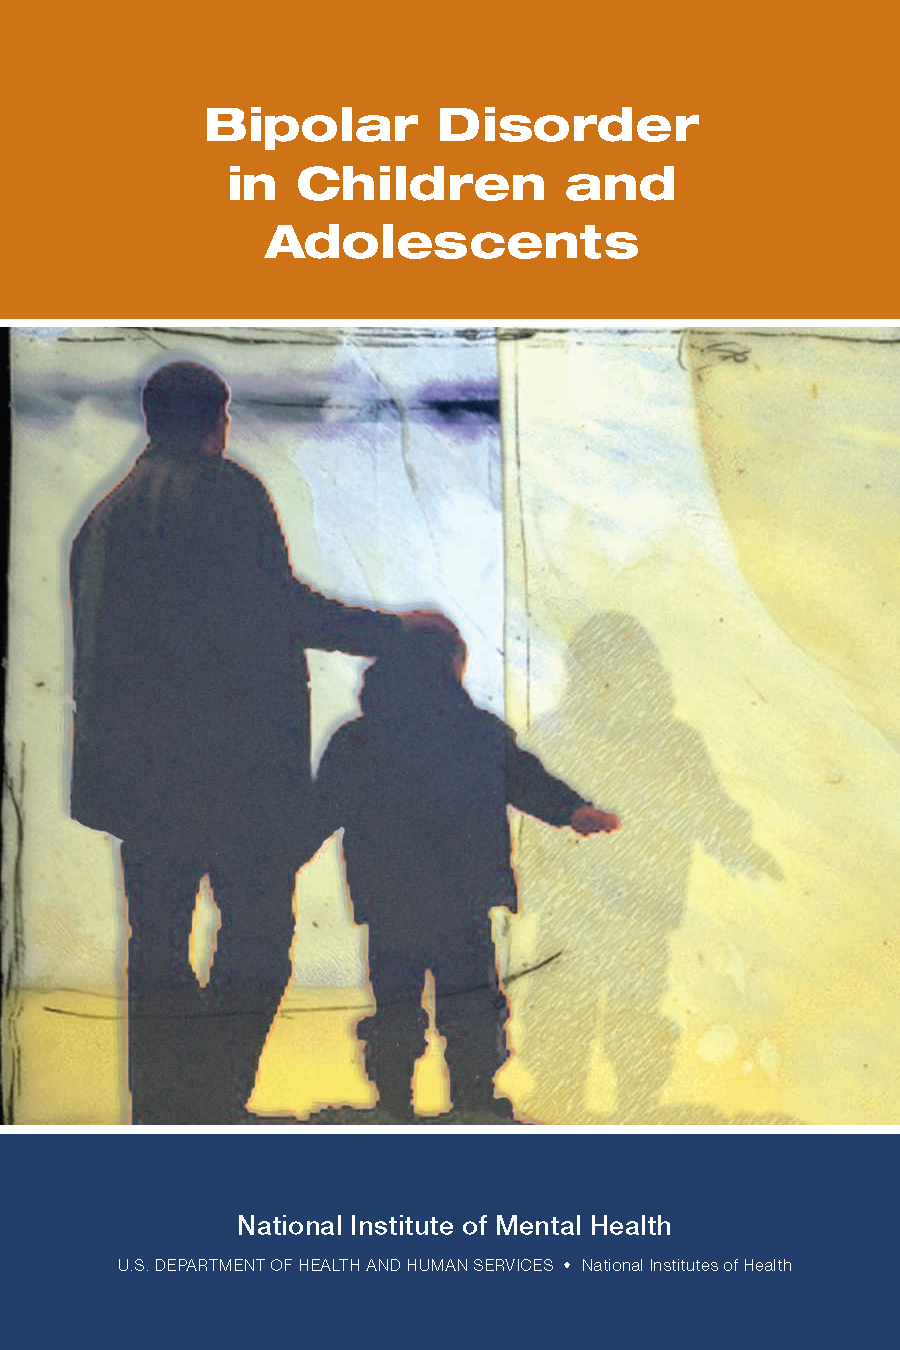 Icon Bipolar Disorder in Children and Adolescents Booklet